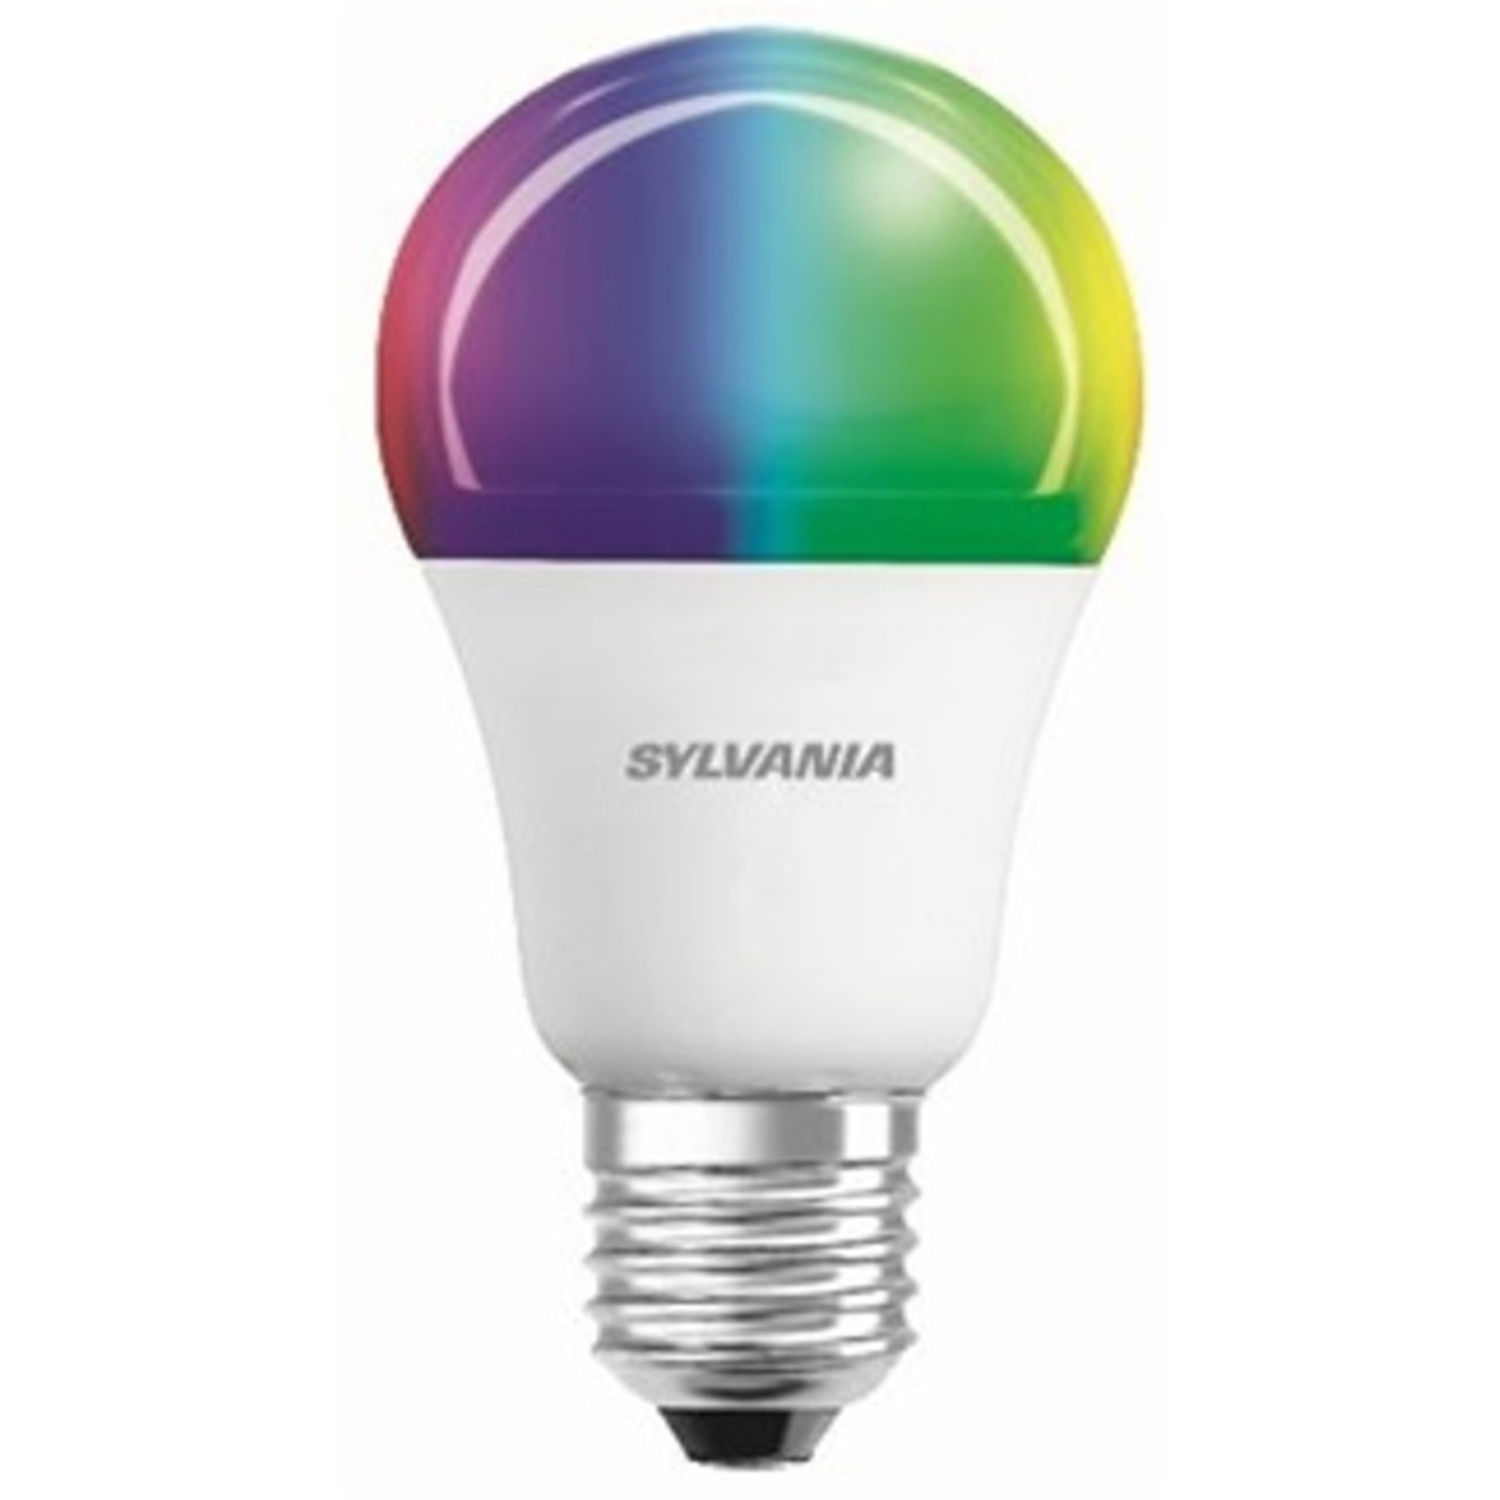 Sylvania  LEDVANCE  60 watts A19  LED Bulb  1200 lumens Multi-Colored  60 Watt Equivalence A-Line